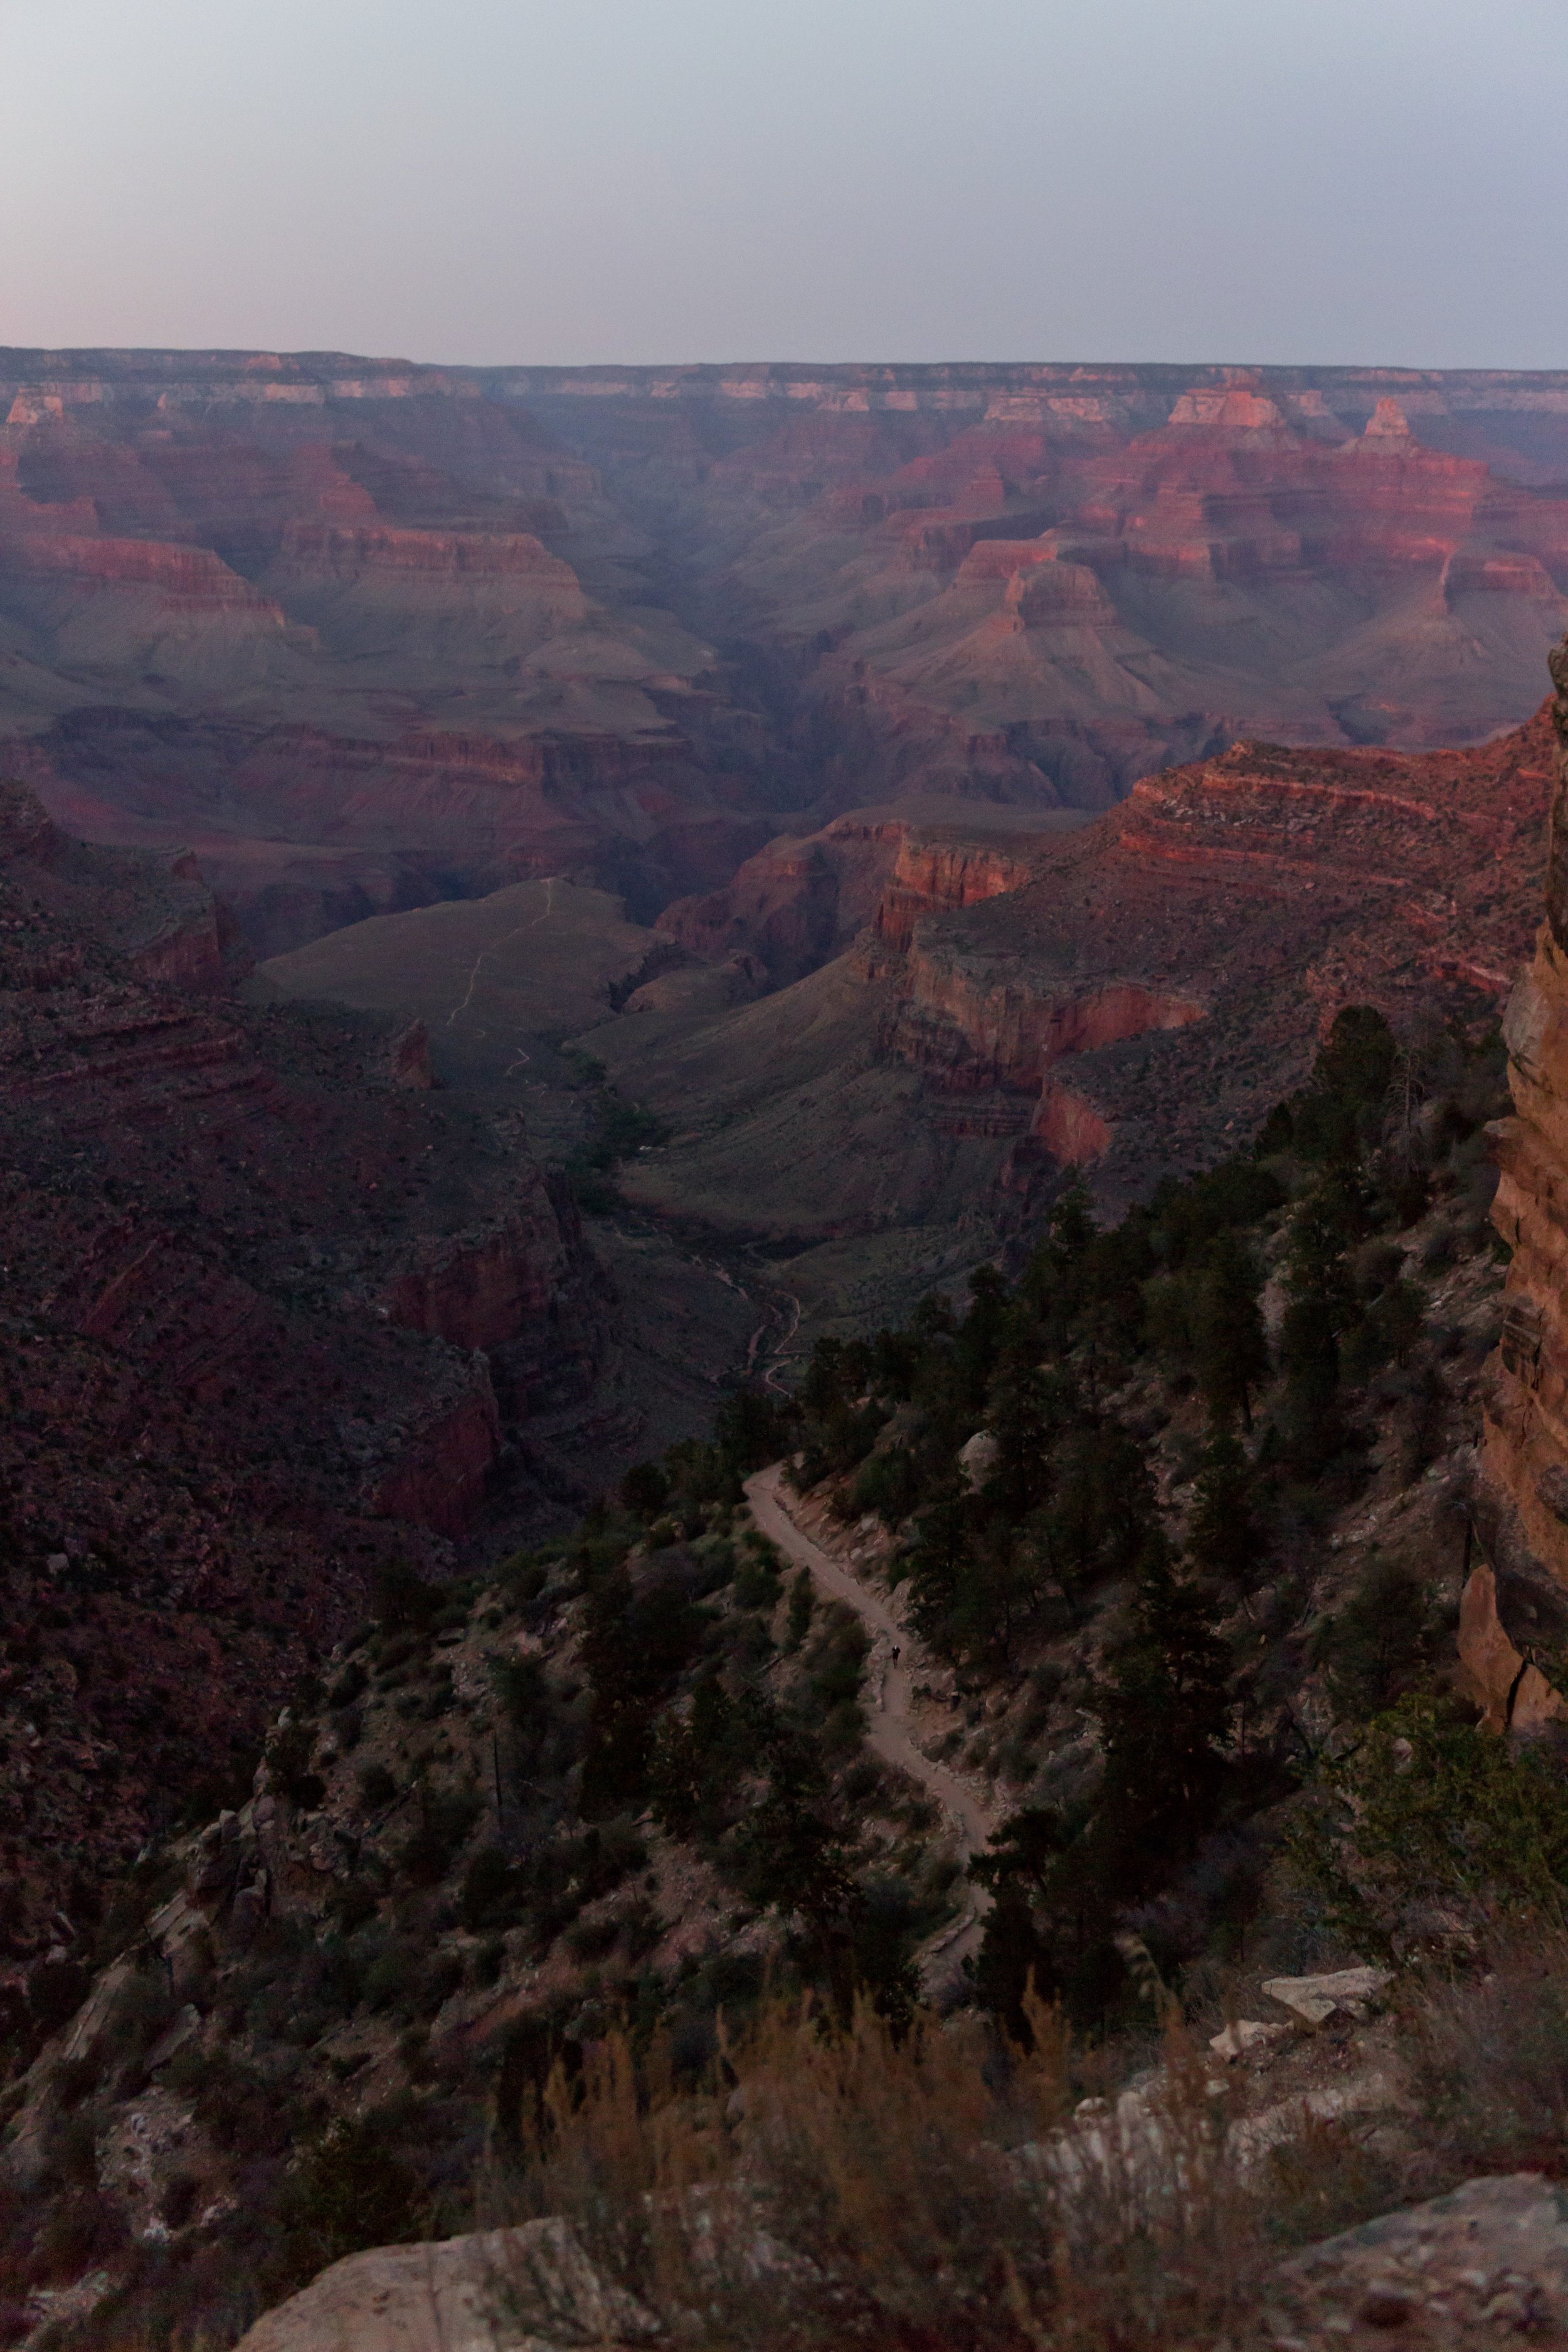 One final look at the Grand Canyon at sunset - we came from left-center on the horizon.